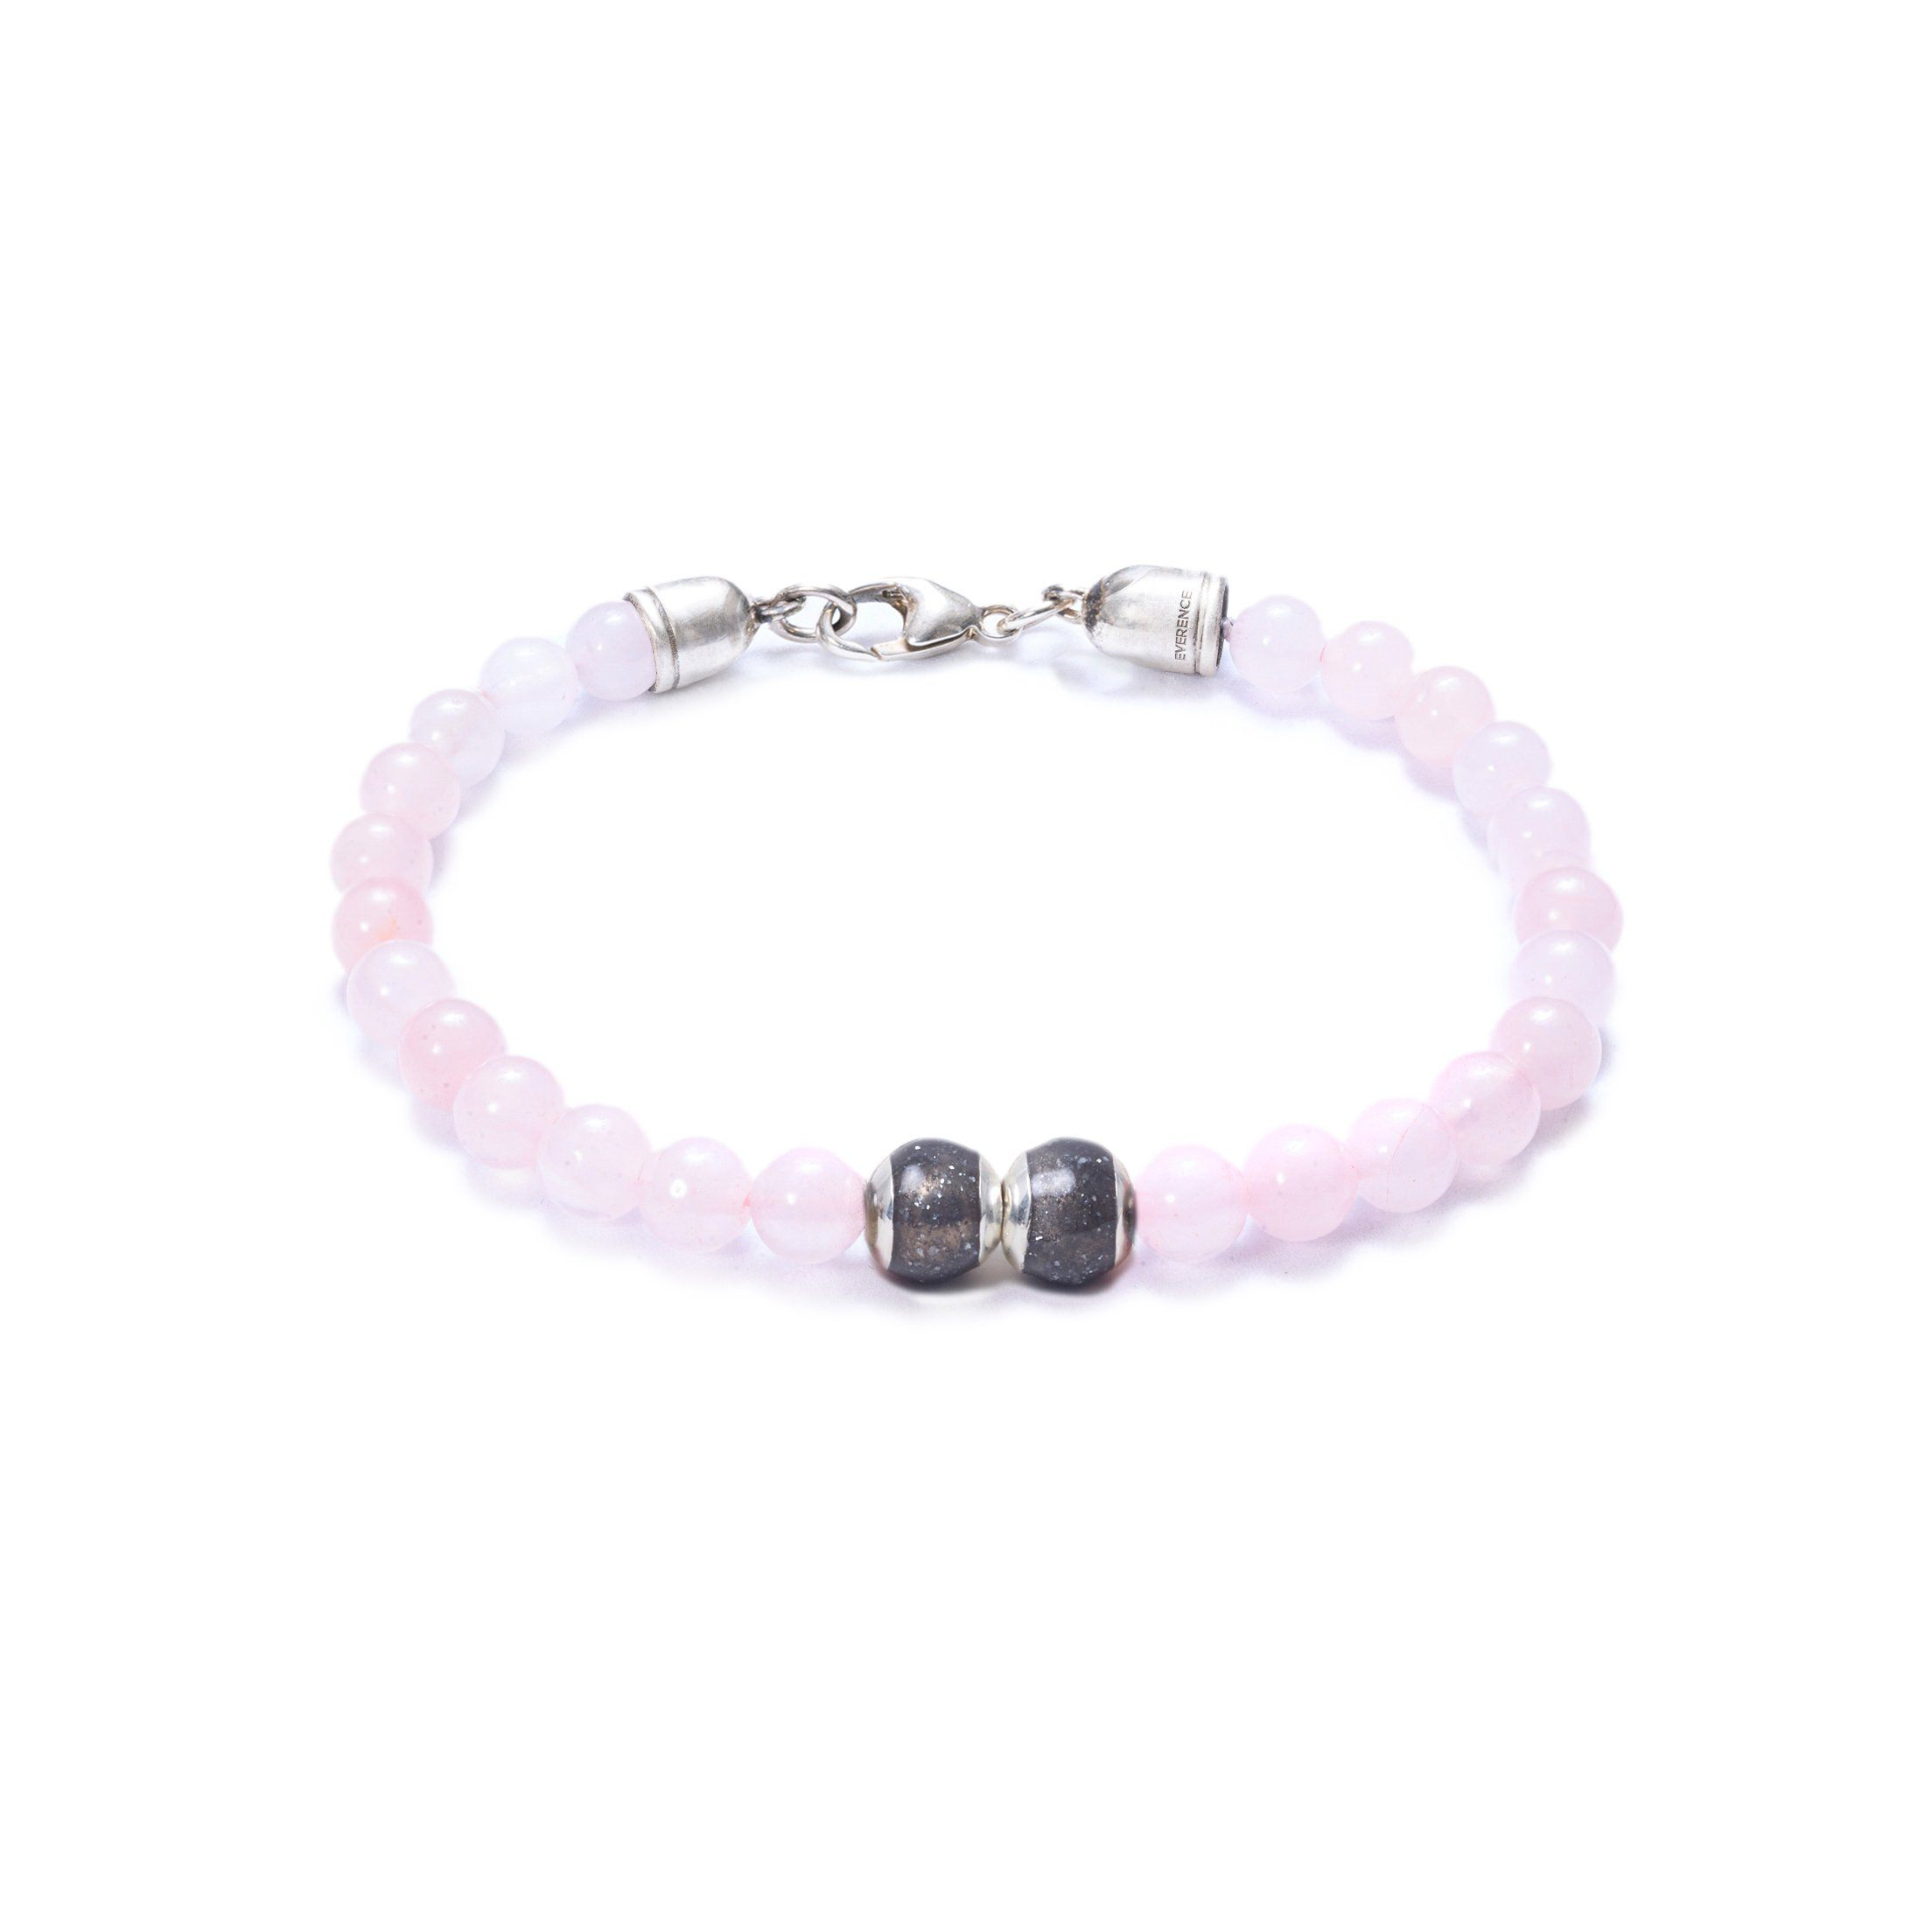 Rose Quartz, Two Everence Beads Everence Grey Lobster Claw 7